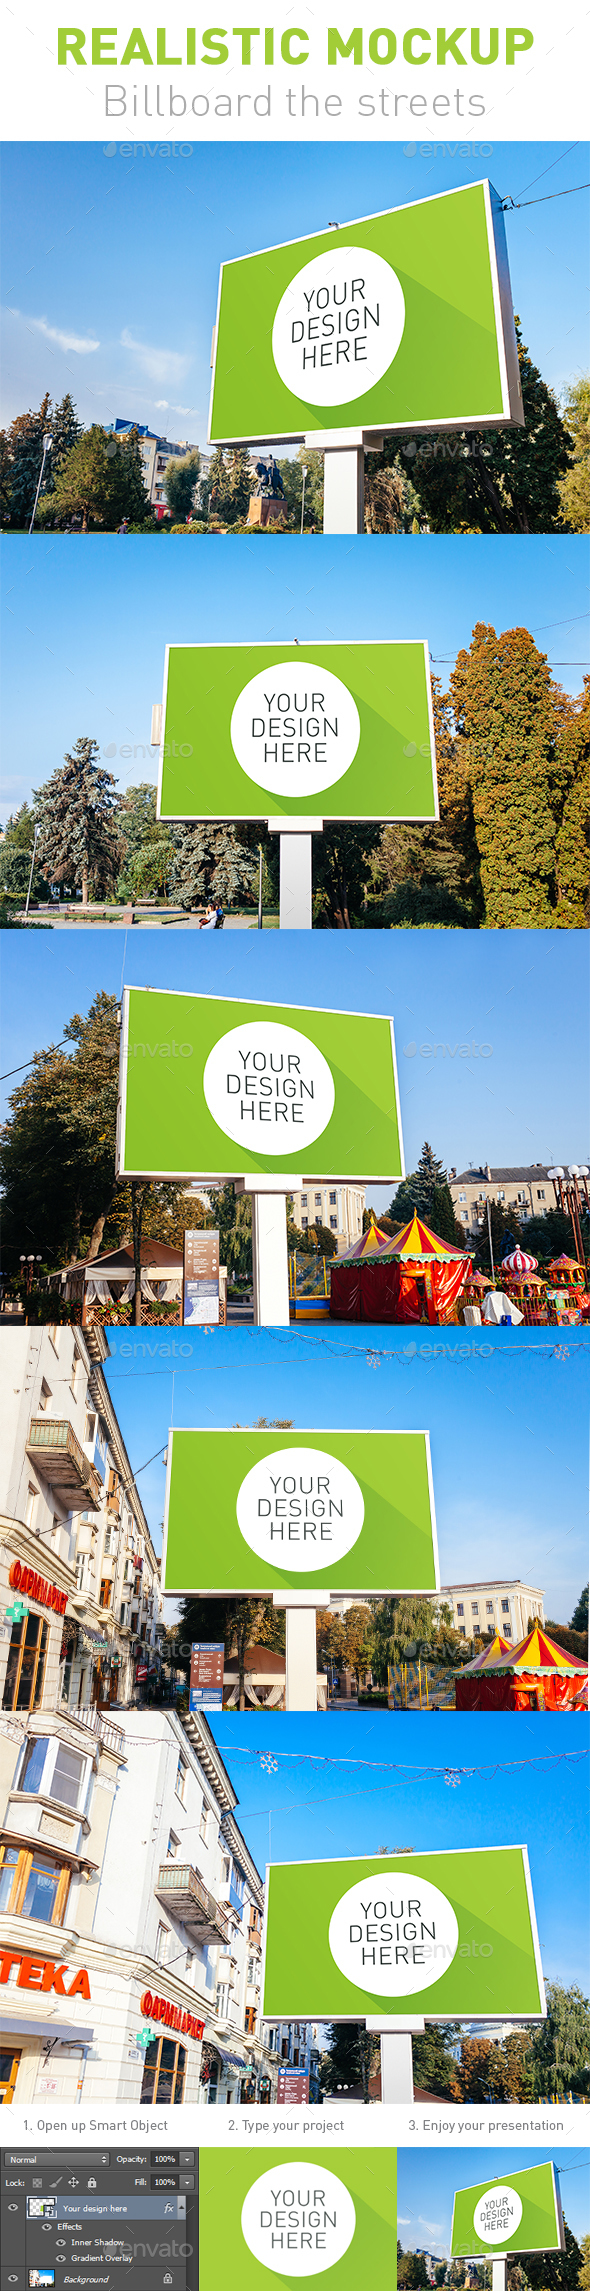 5 Realistic Mockup Billboard the Streets